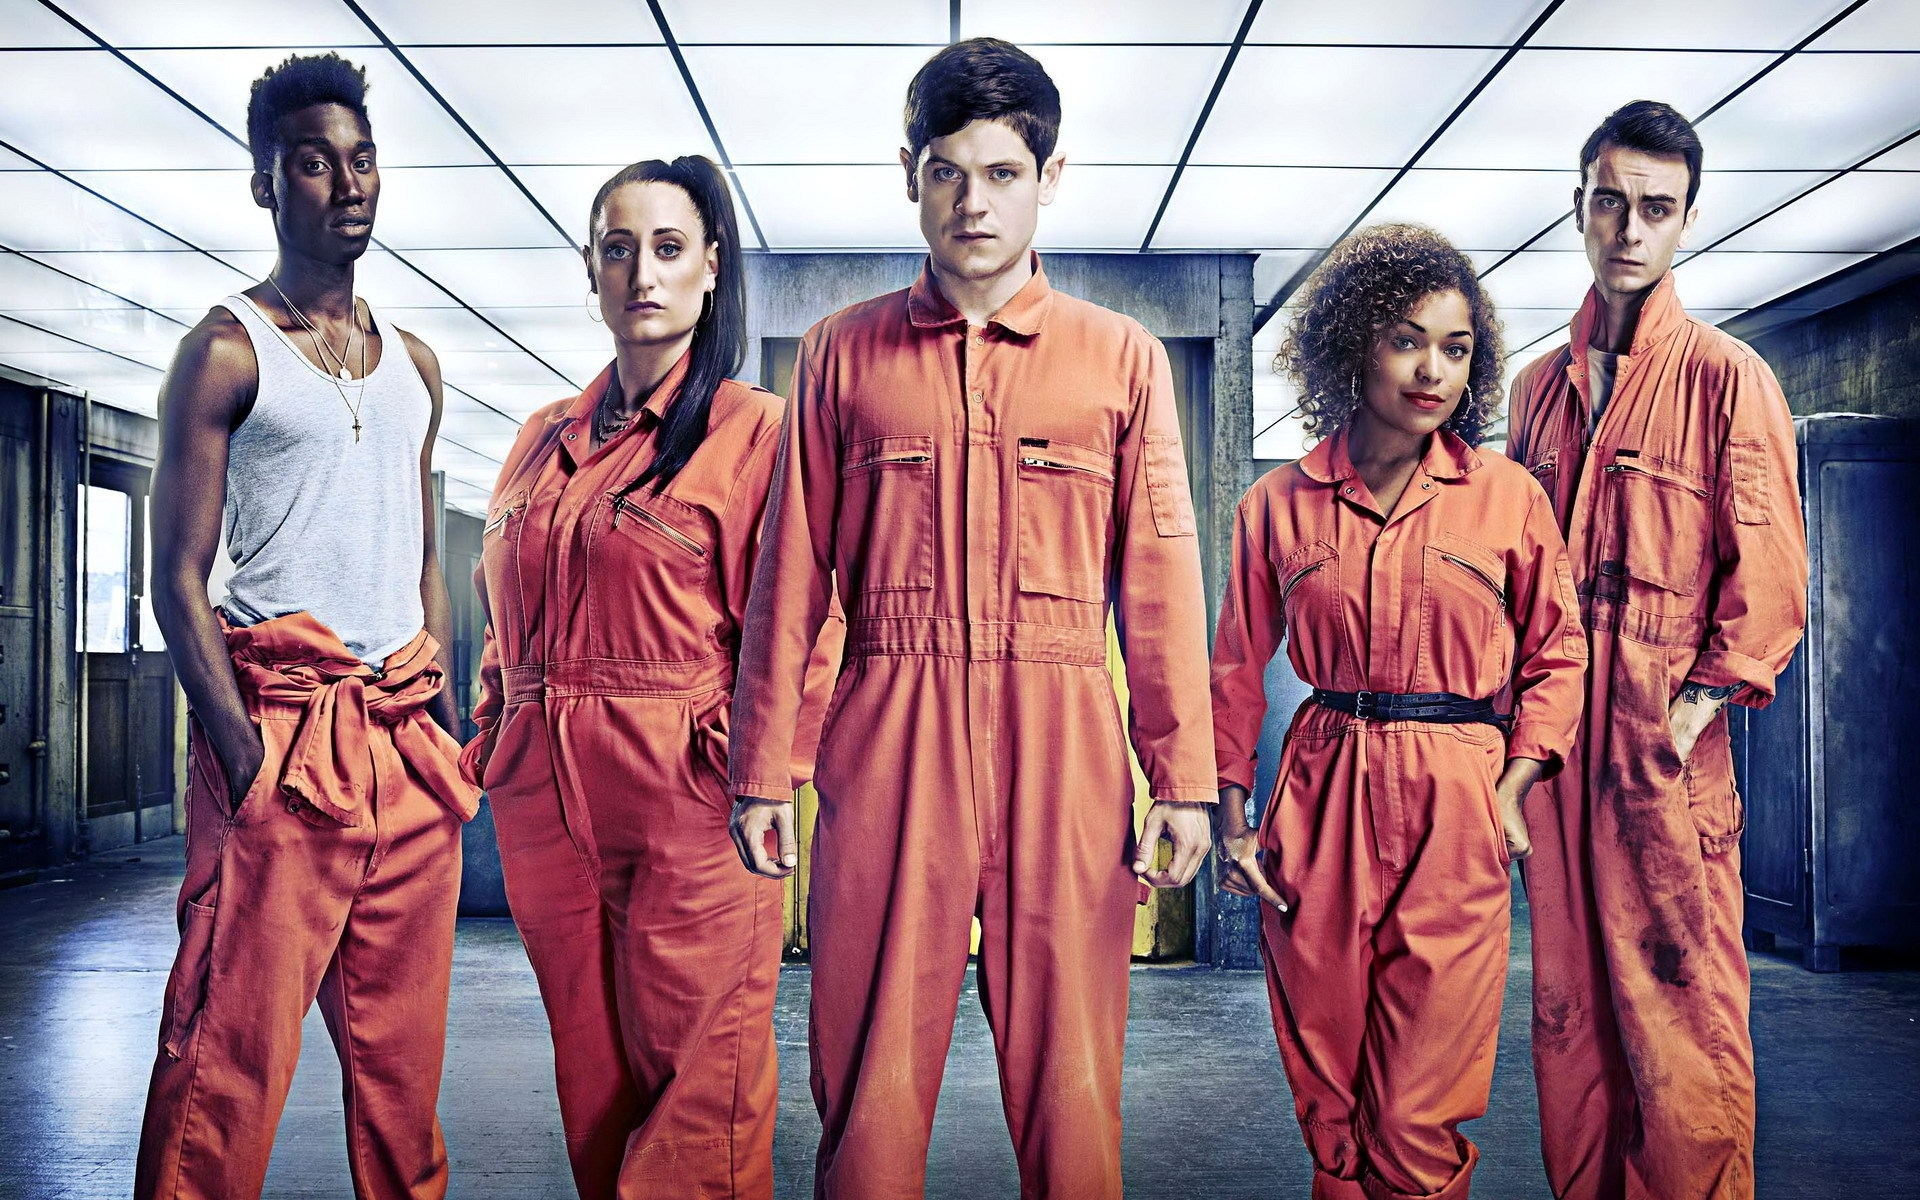 Misfits for 1920 x 1200 widescreen resolution